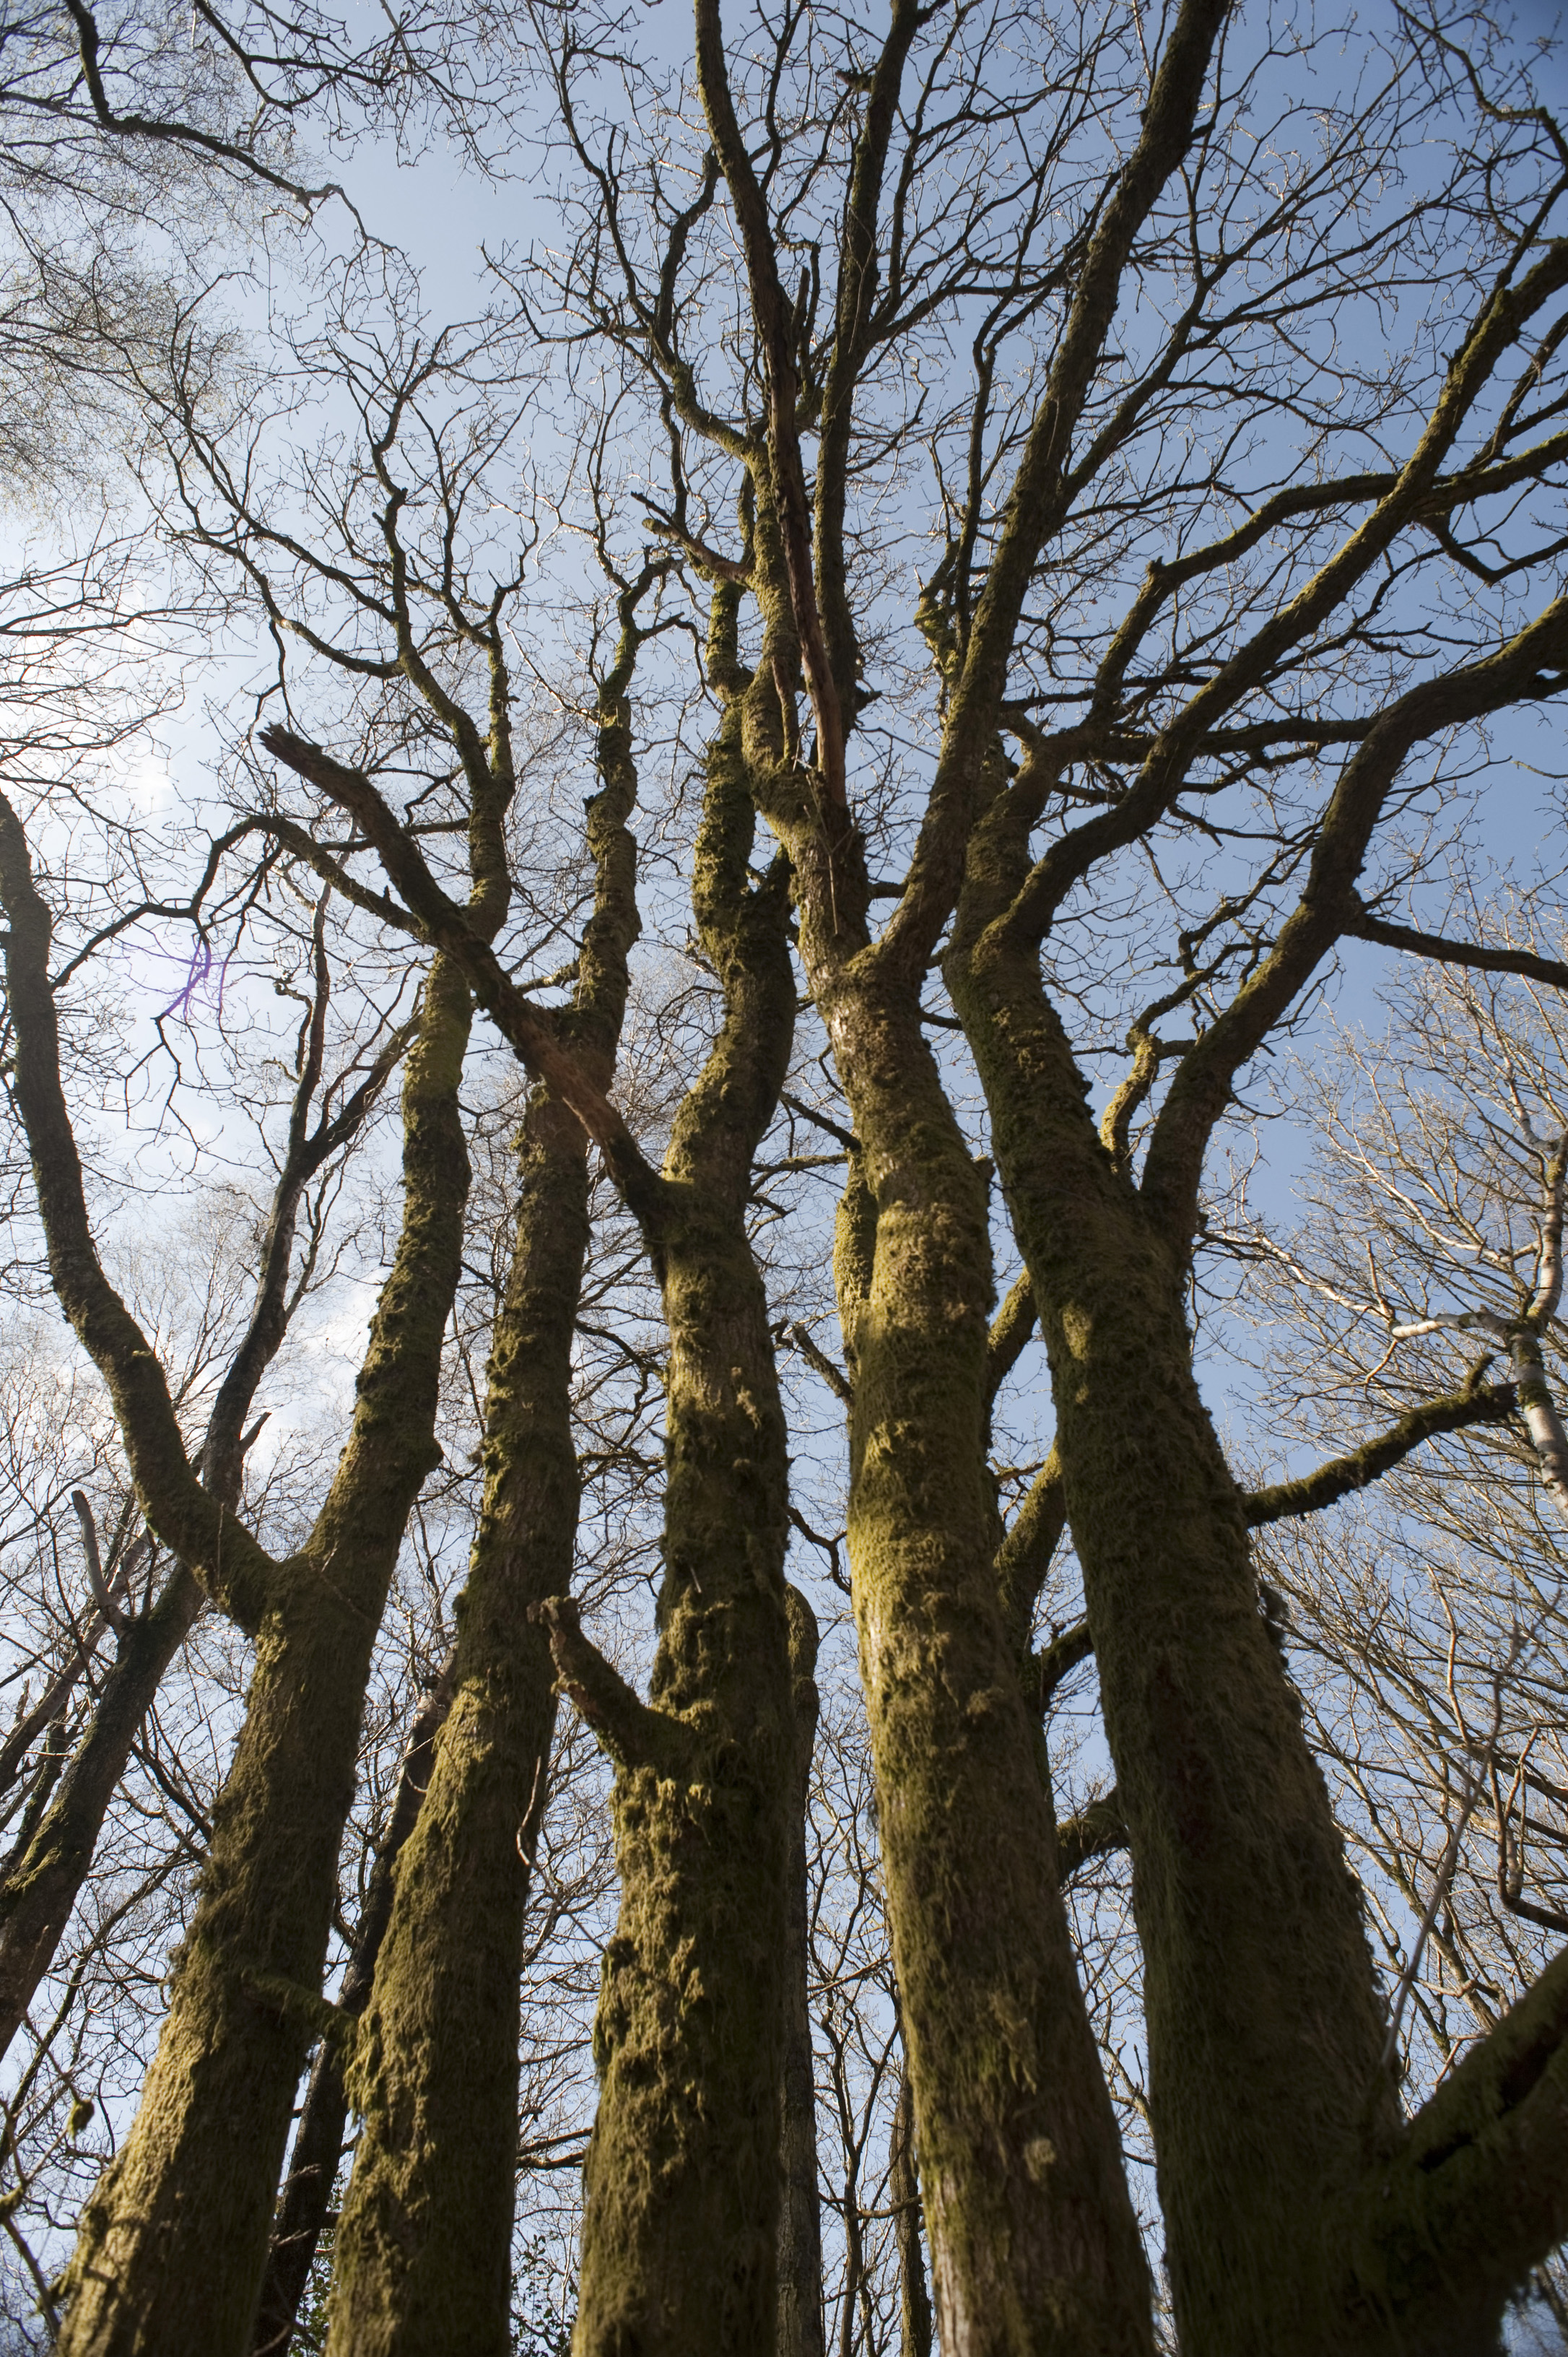 Low angle view of a copse of tall leafless deciduous trees with moss covered bark reaching for the blue sky